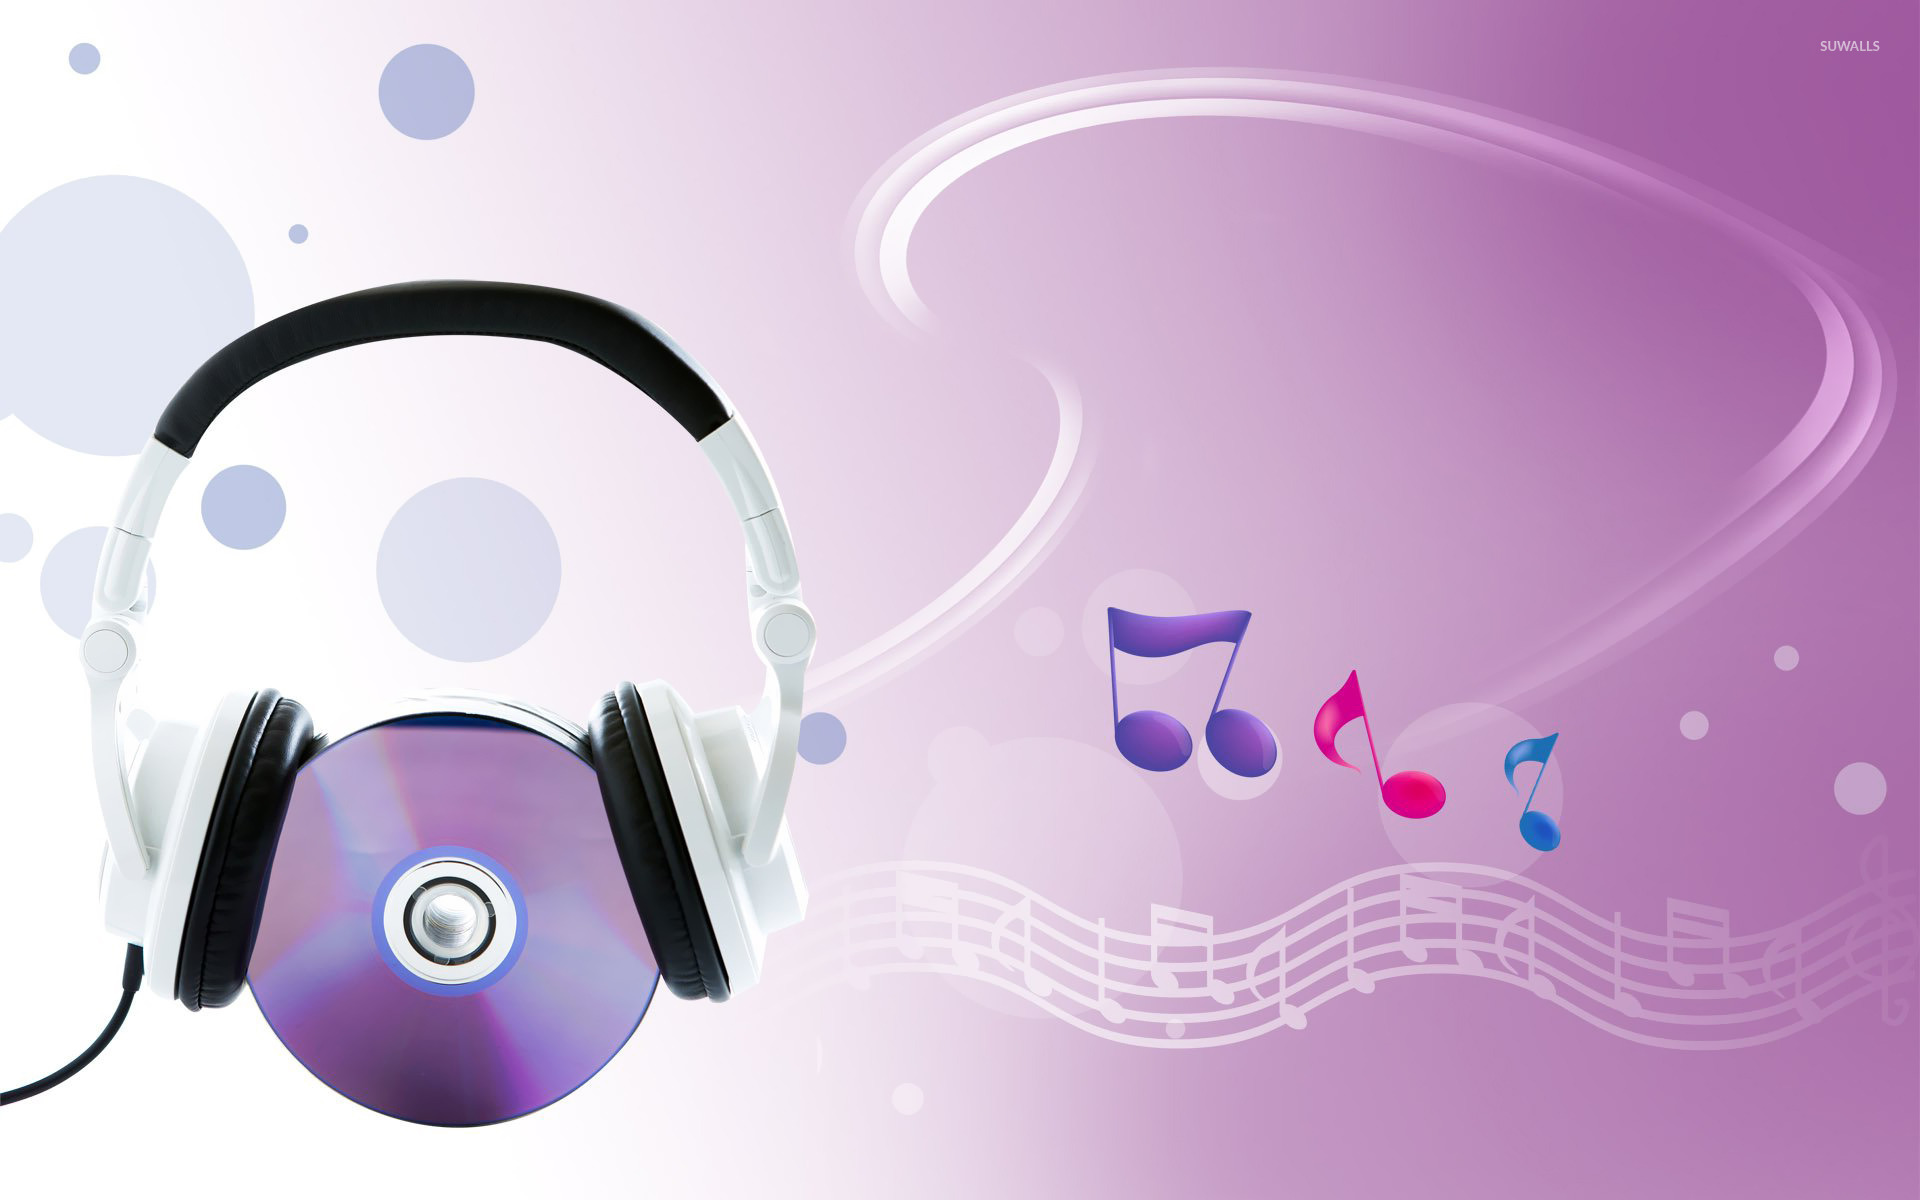 Beautiful Wallpaper Music Headphone - headphones-on-a-cd-20796-1920x1200  Best Photo Reference_245594.jpg